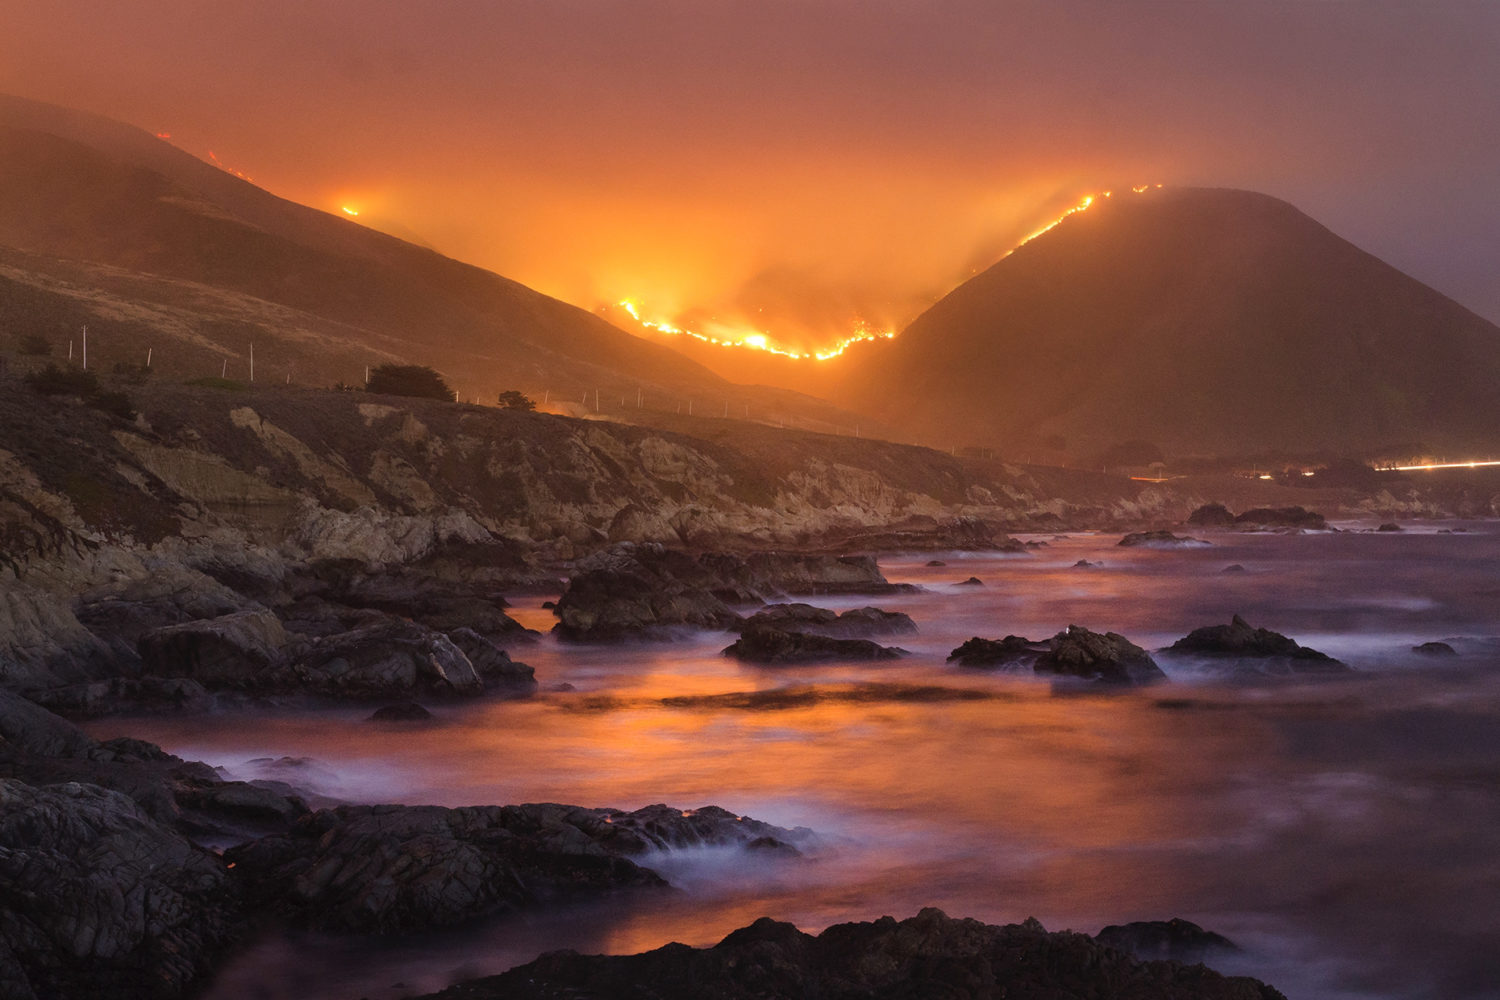 Extraordinary photos of wildfires